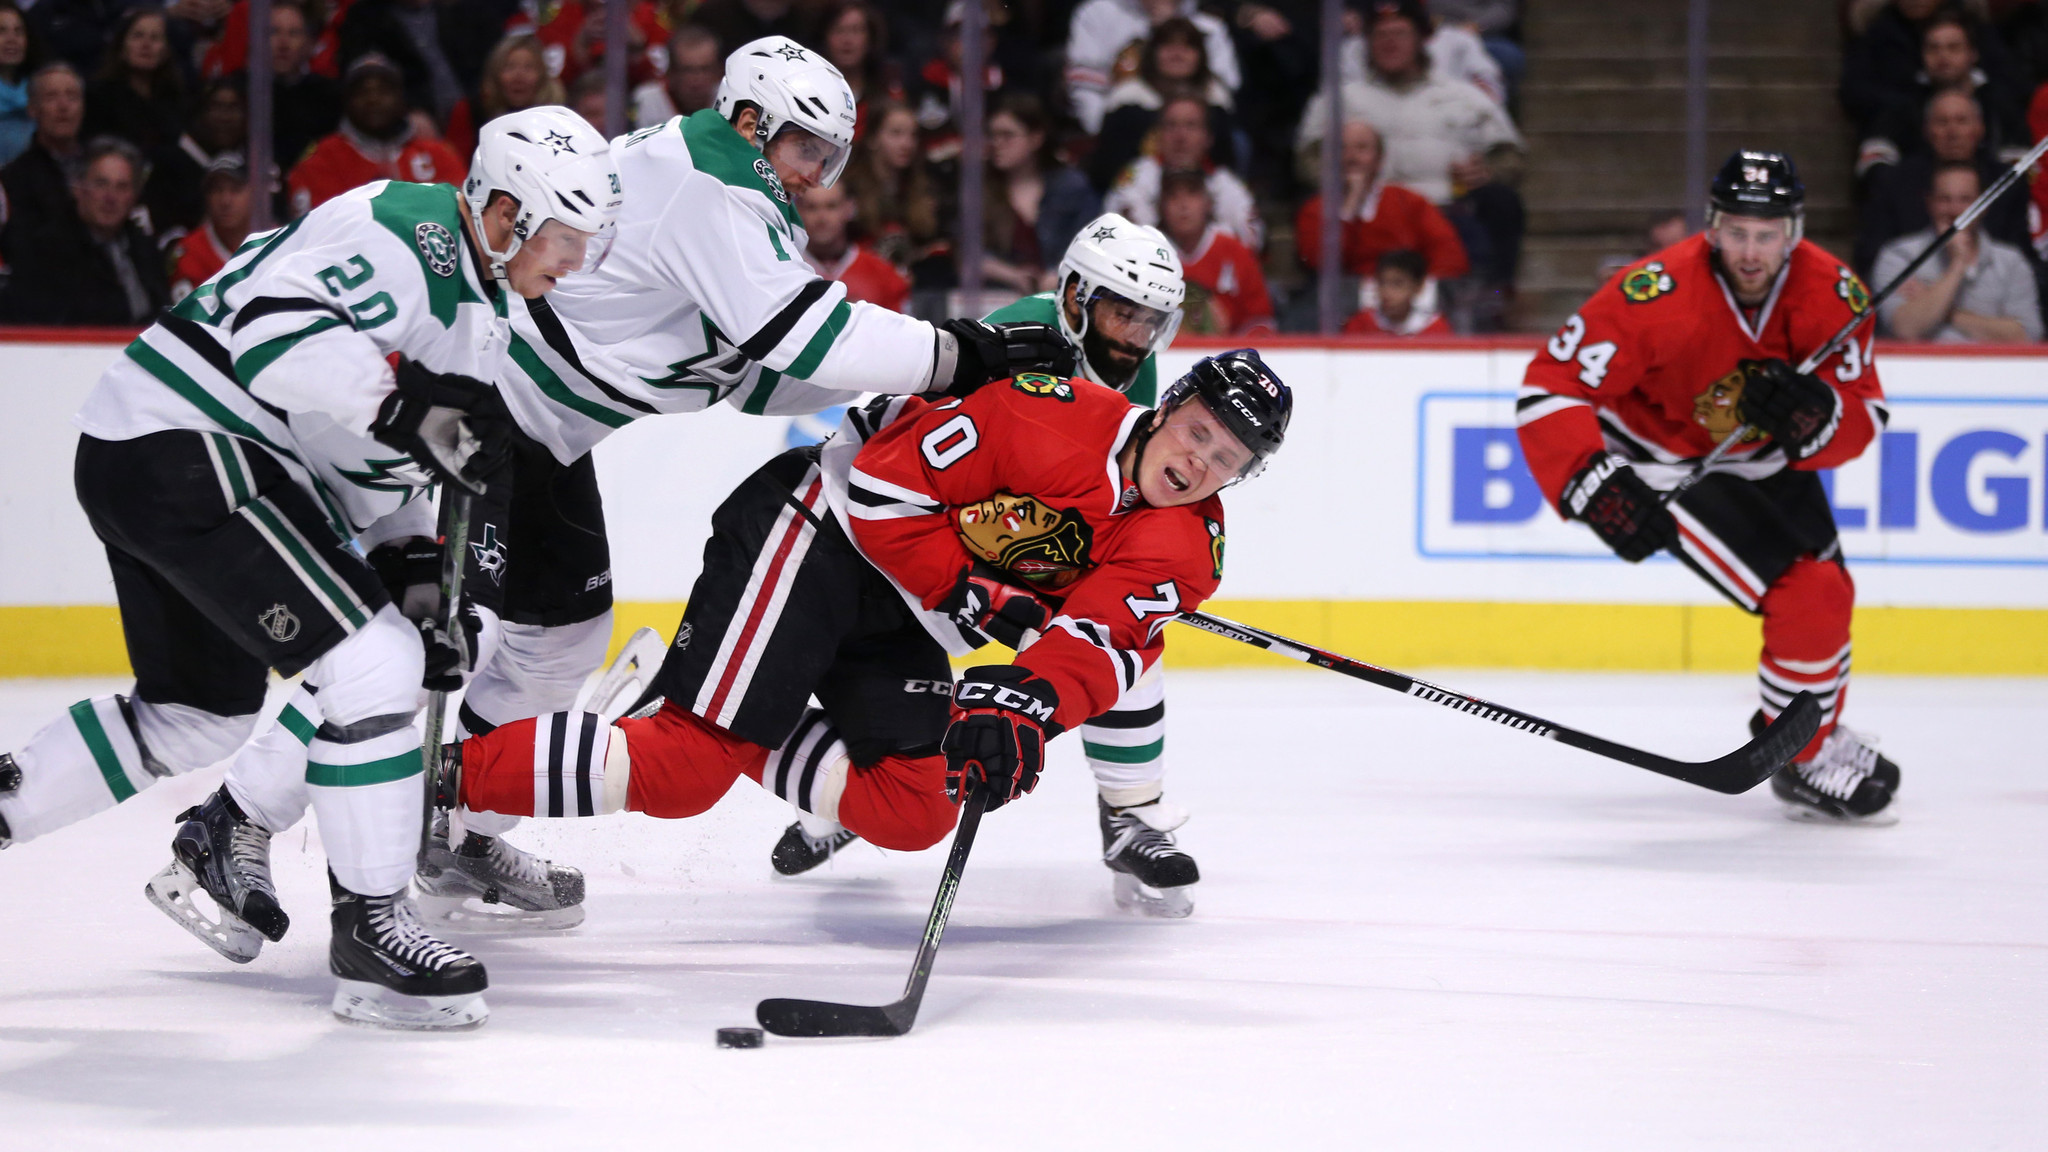 Ct-blackhawks-vs-stars-photos-spt-20160211